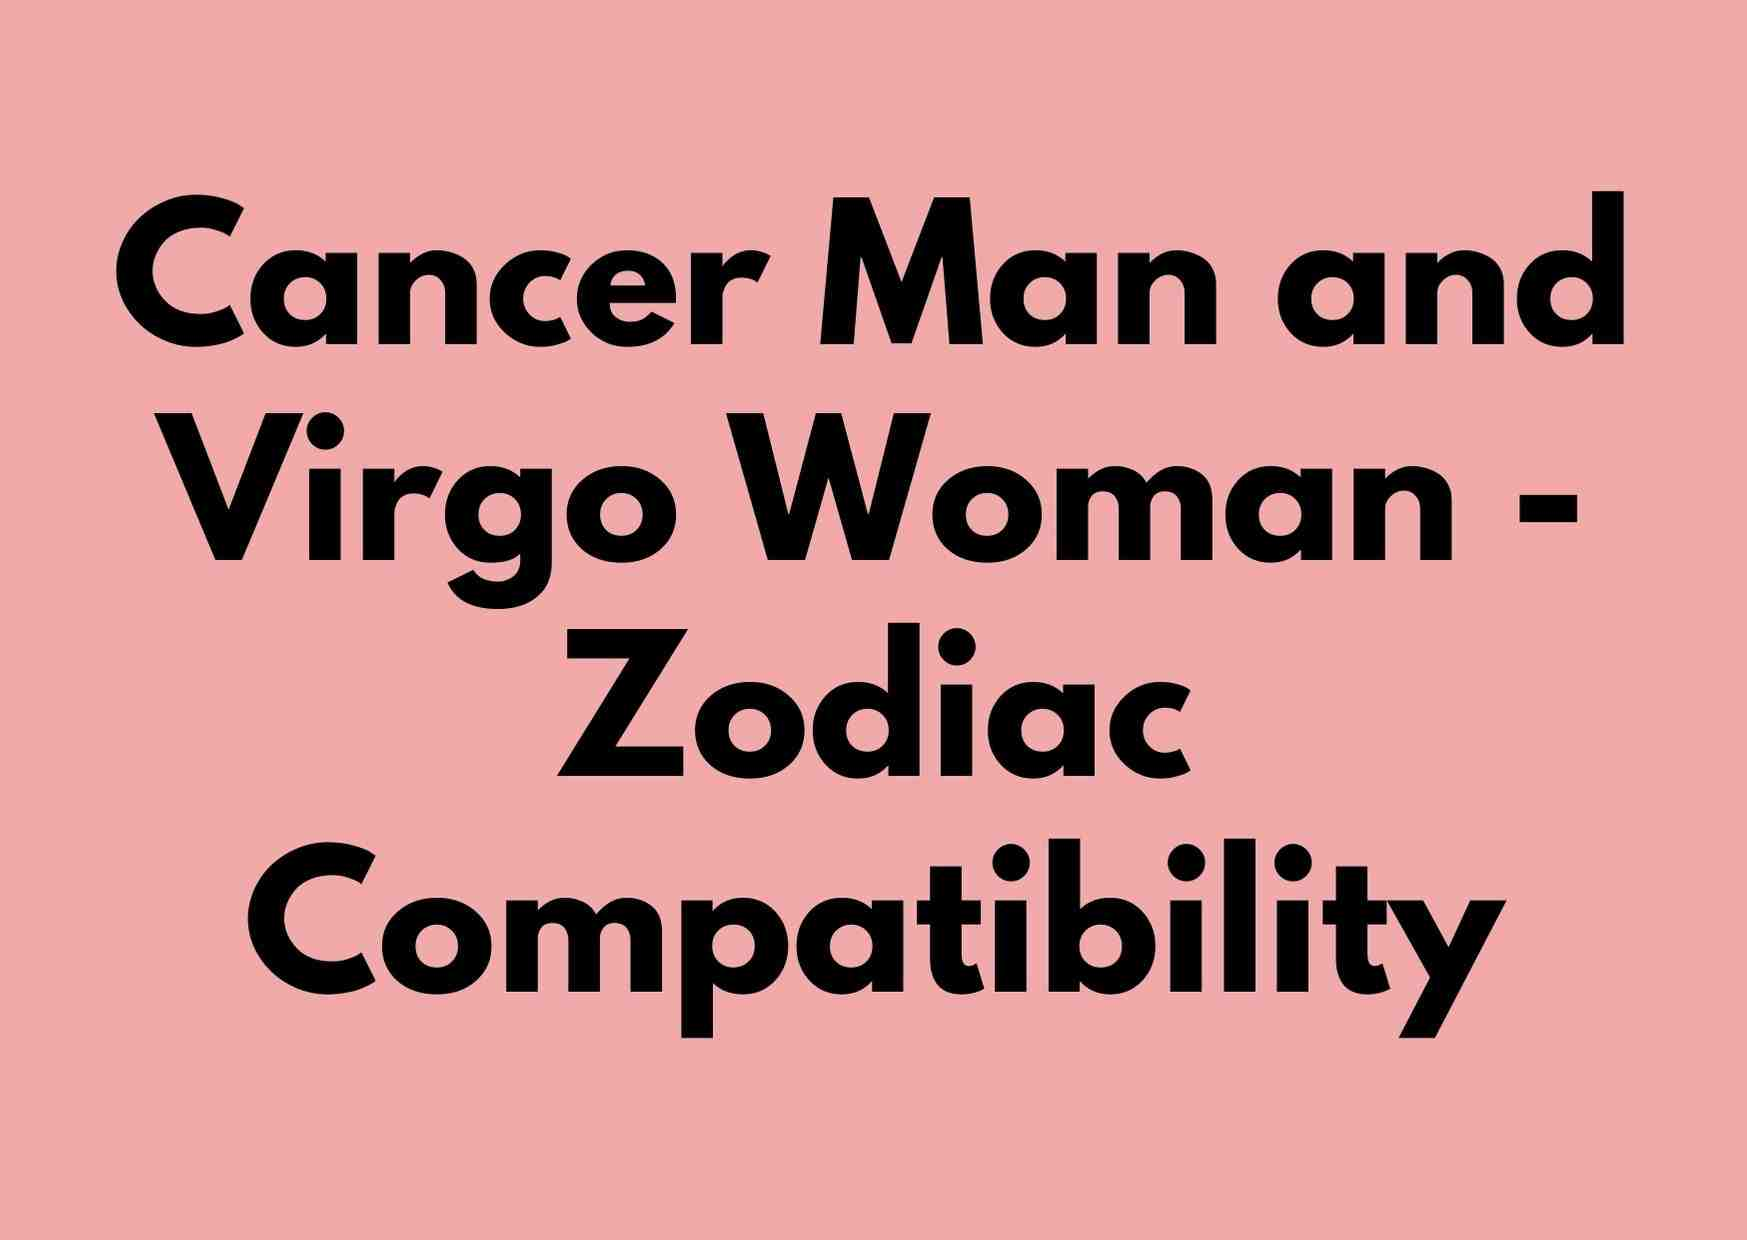 Cancer Man and Virgo Woman - Zodiac Compatibility